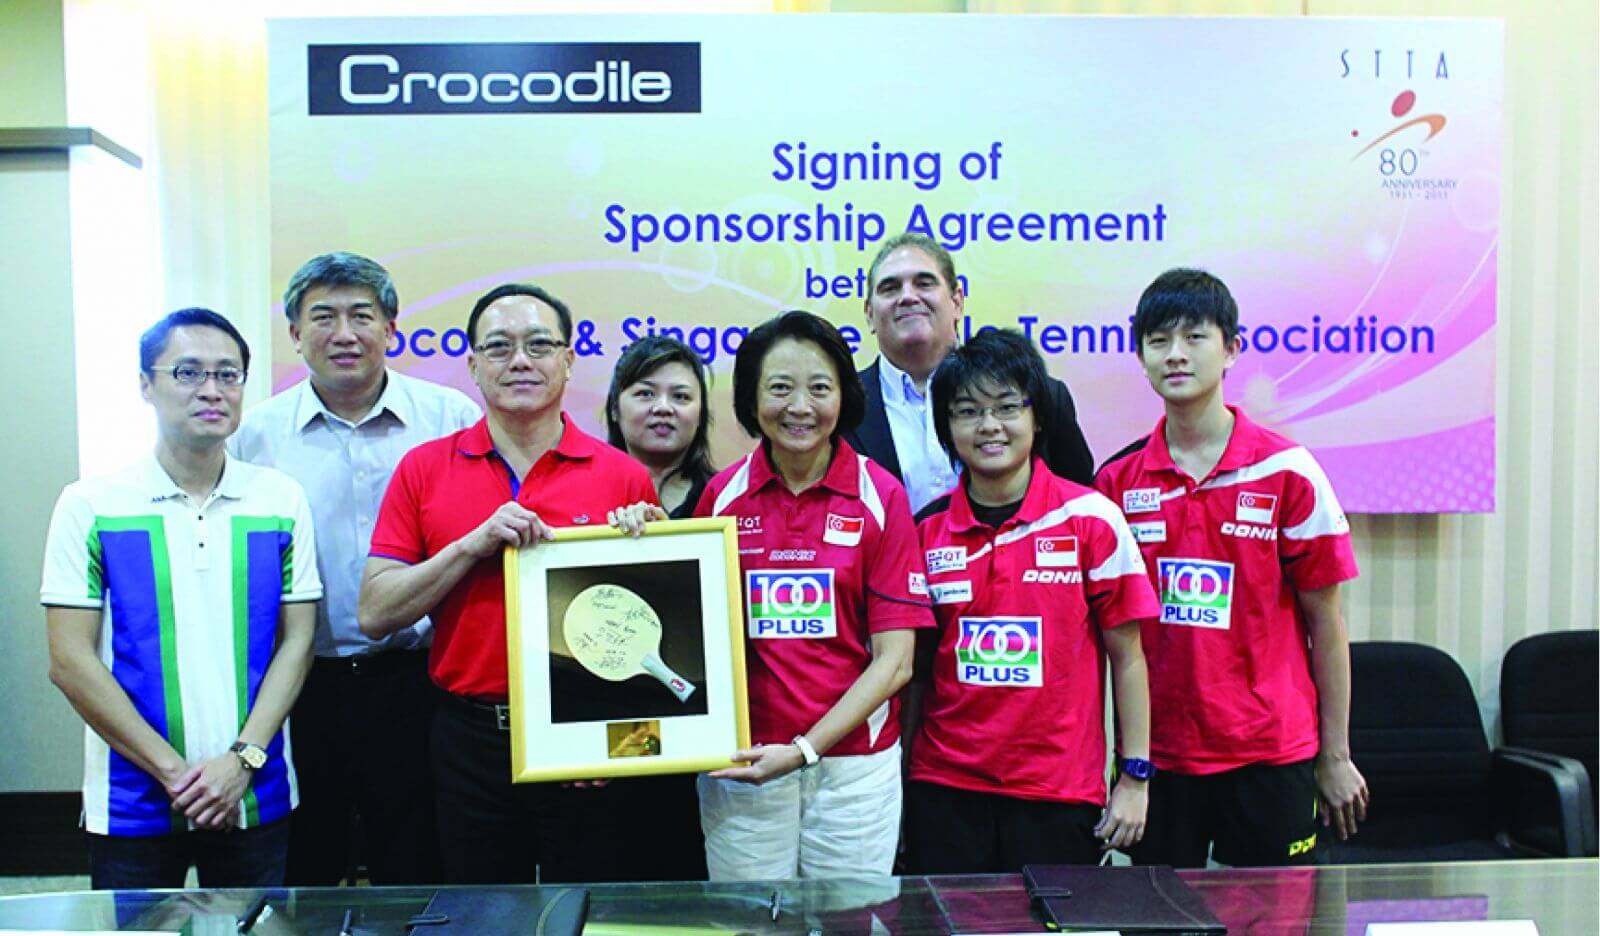 Sponsorship for Crocodile Challenge Cup for a 10-year deal – an annual table tennis tournament for primary school paddlers